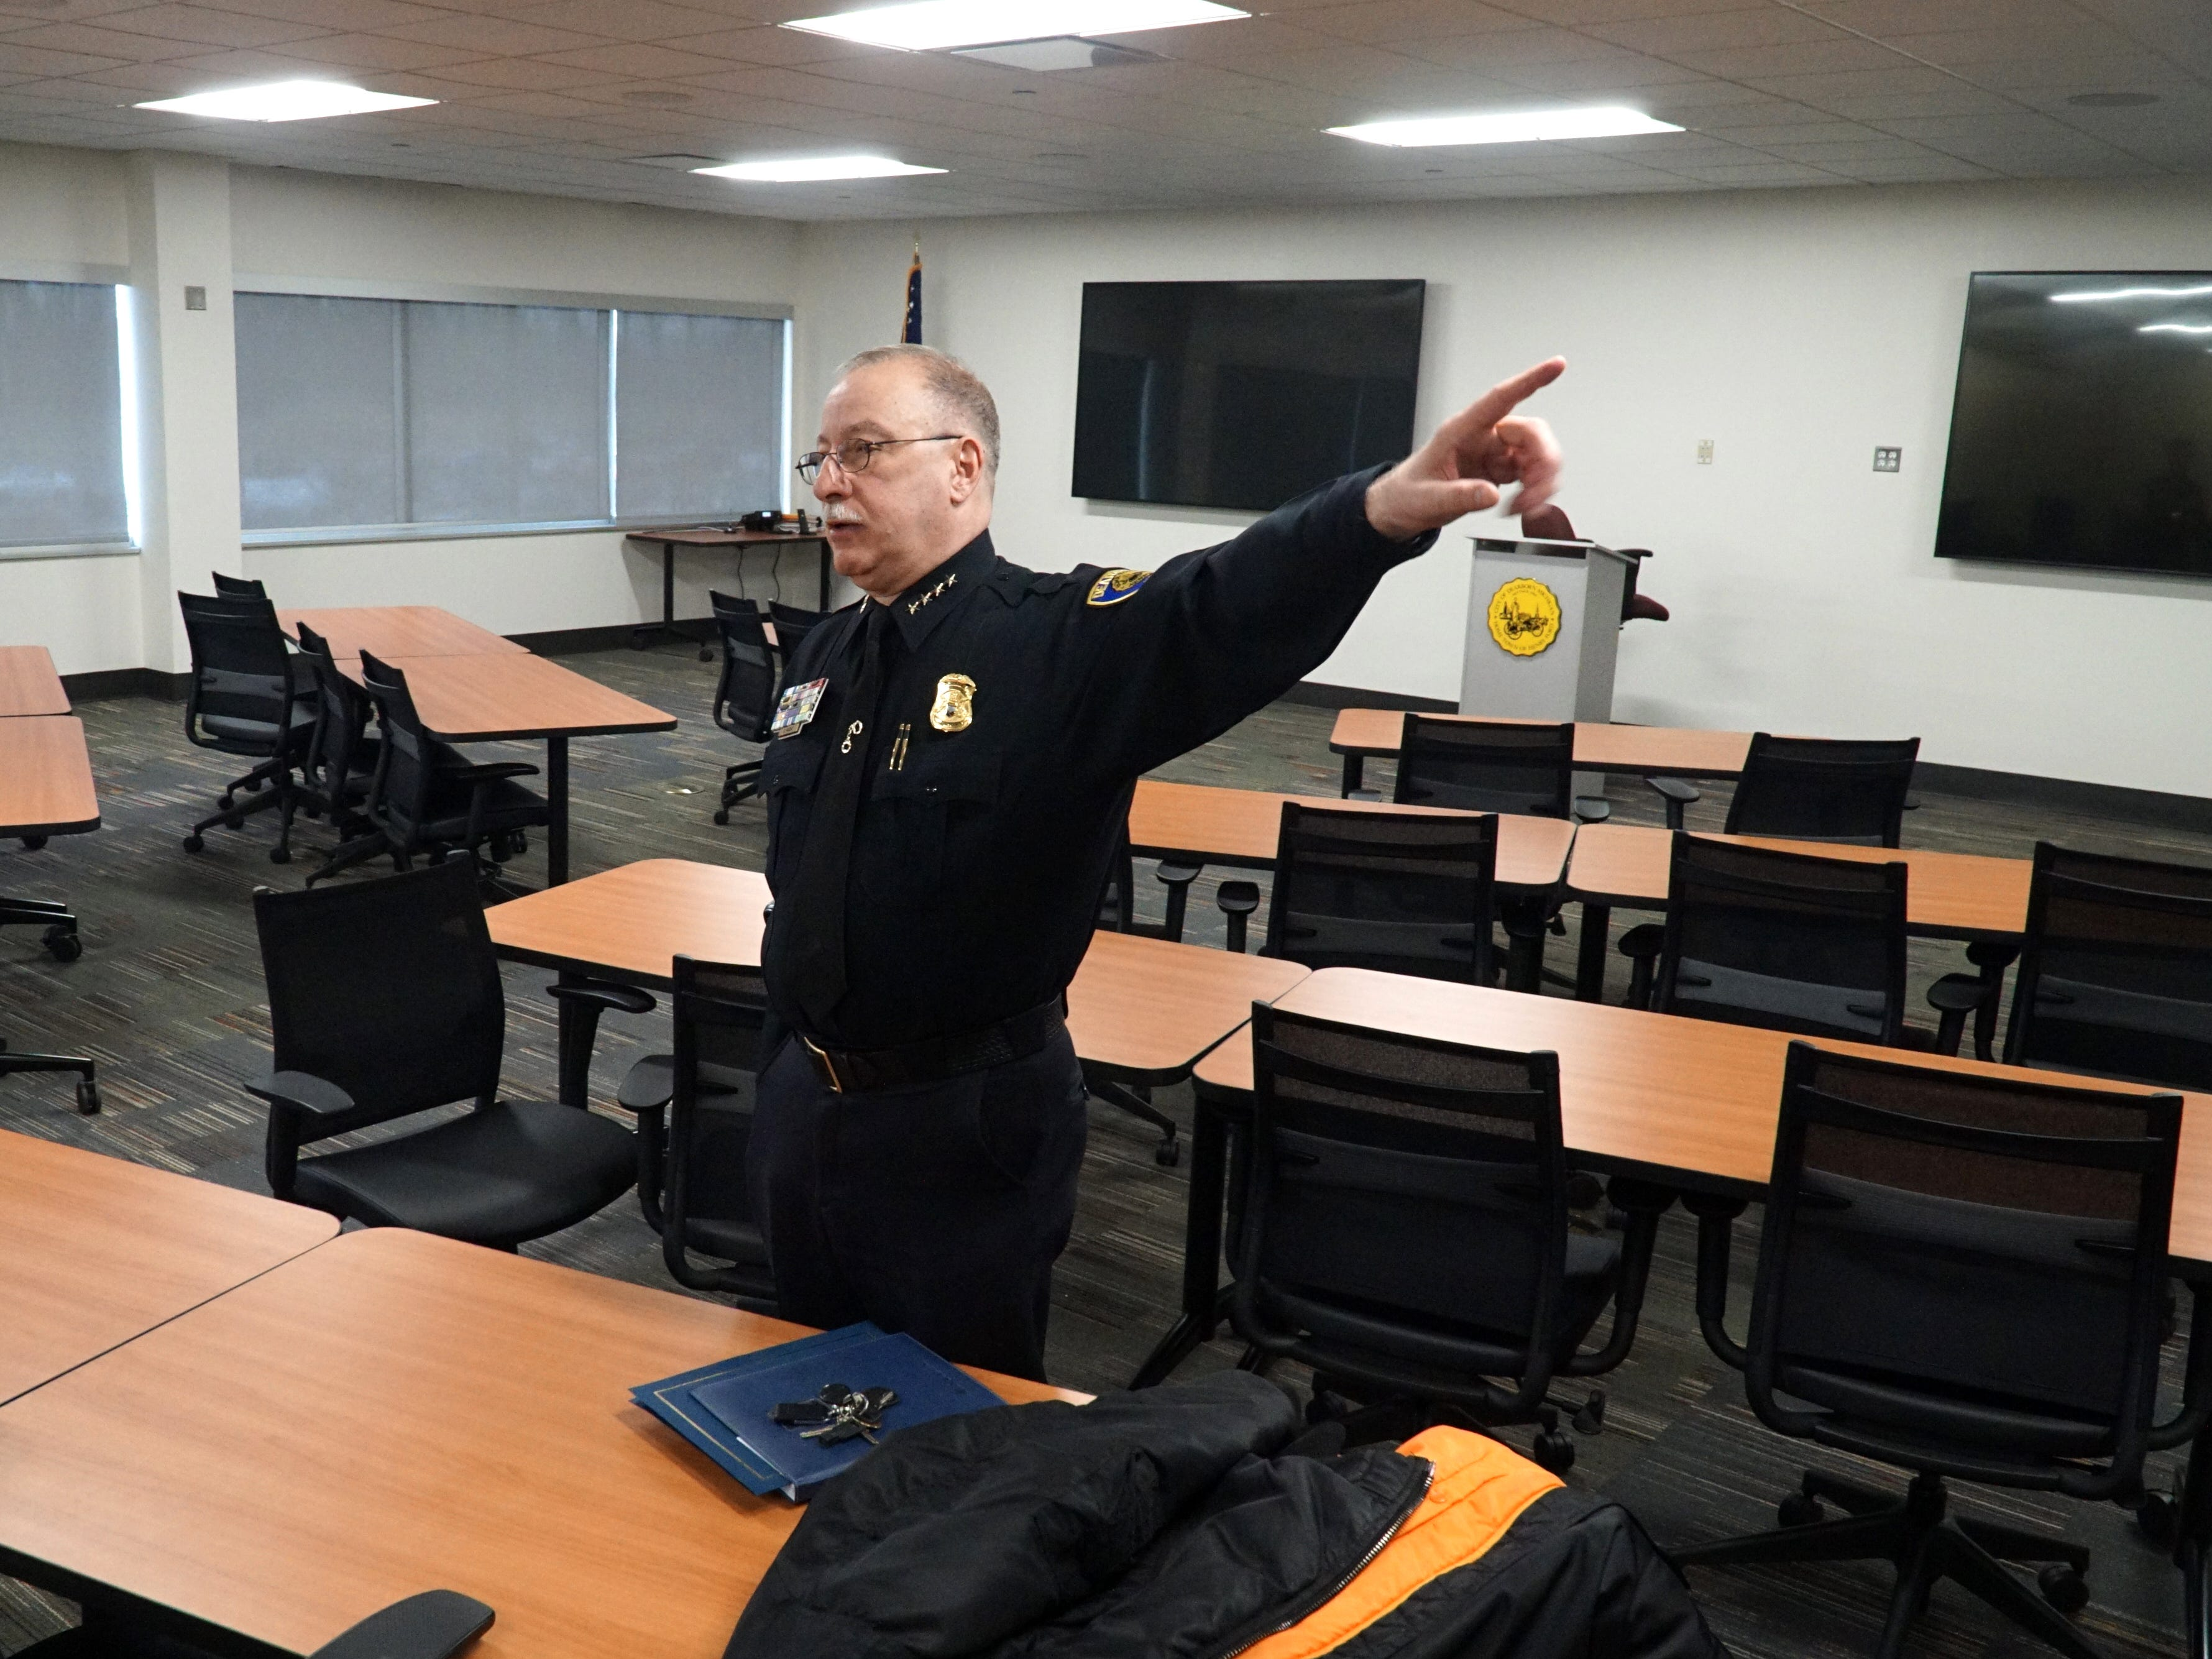 Dearborn Police Chief Ronald Haddad shows off his department's new Emergency Command Center - in its Administrative Center building on Michigan Avenue.